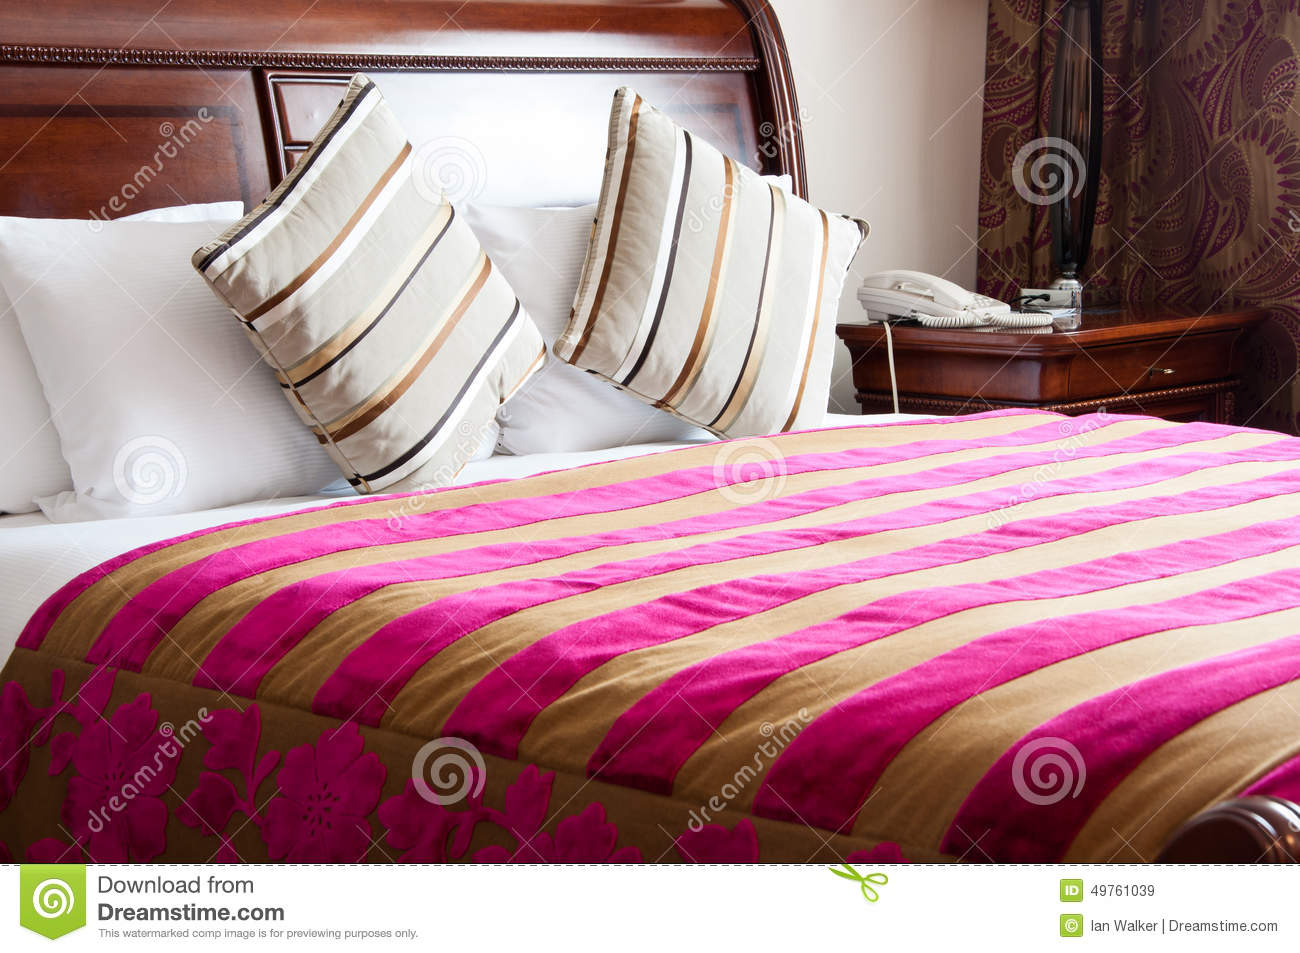 Luxury King Size Bed Stock Image Image Of Vacation 49761039